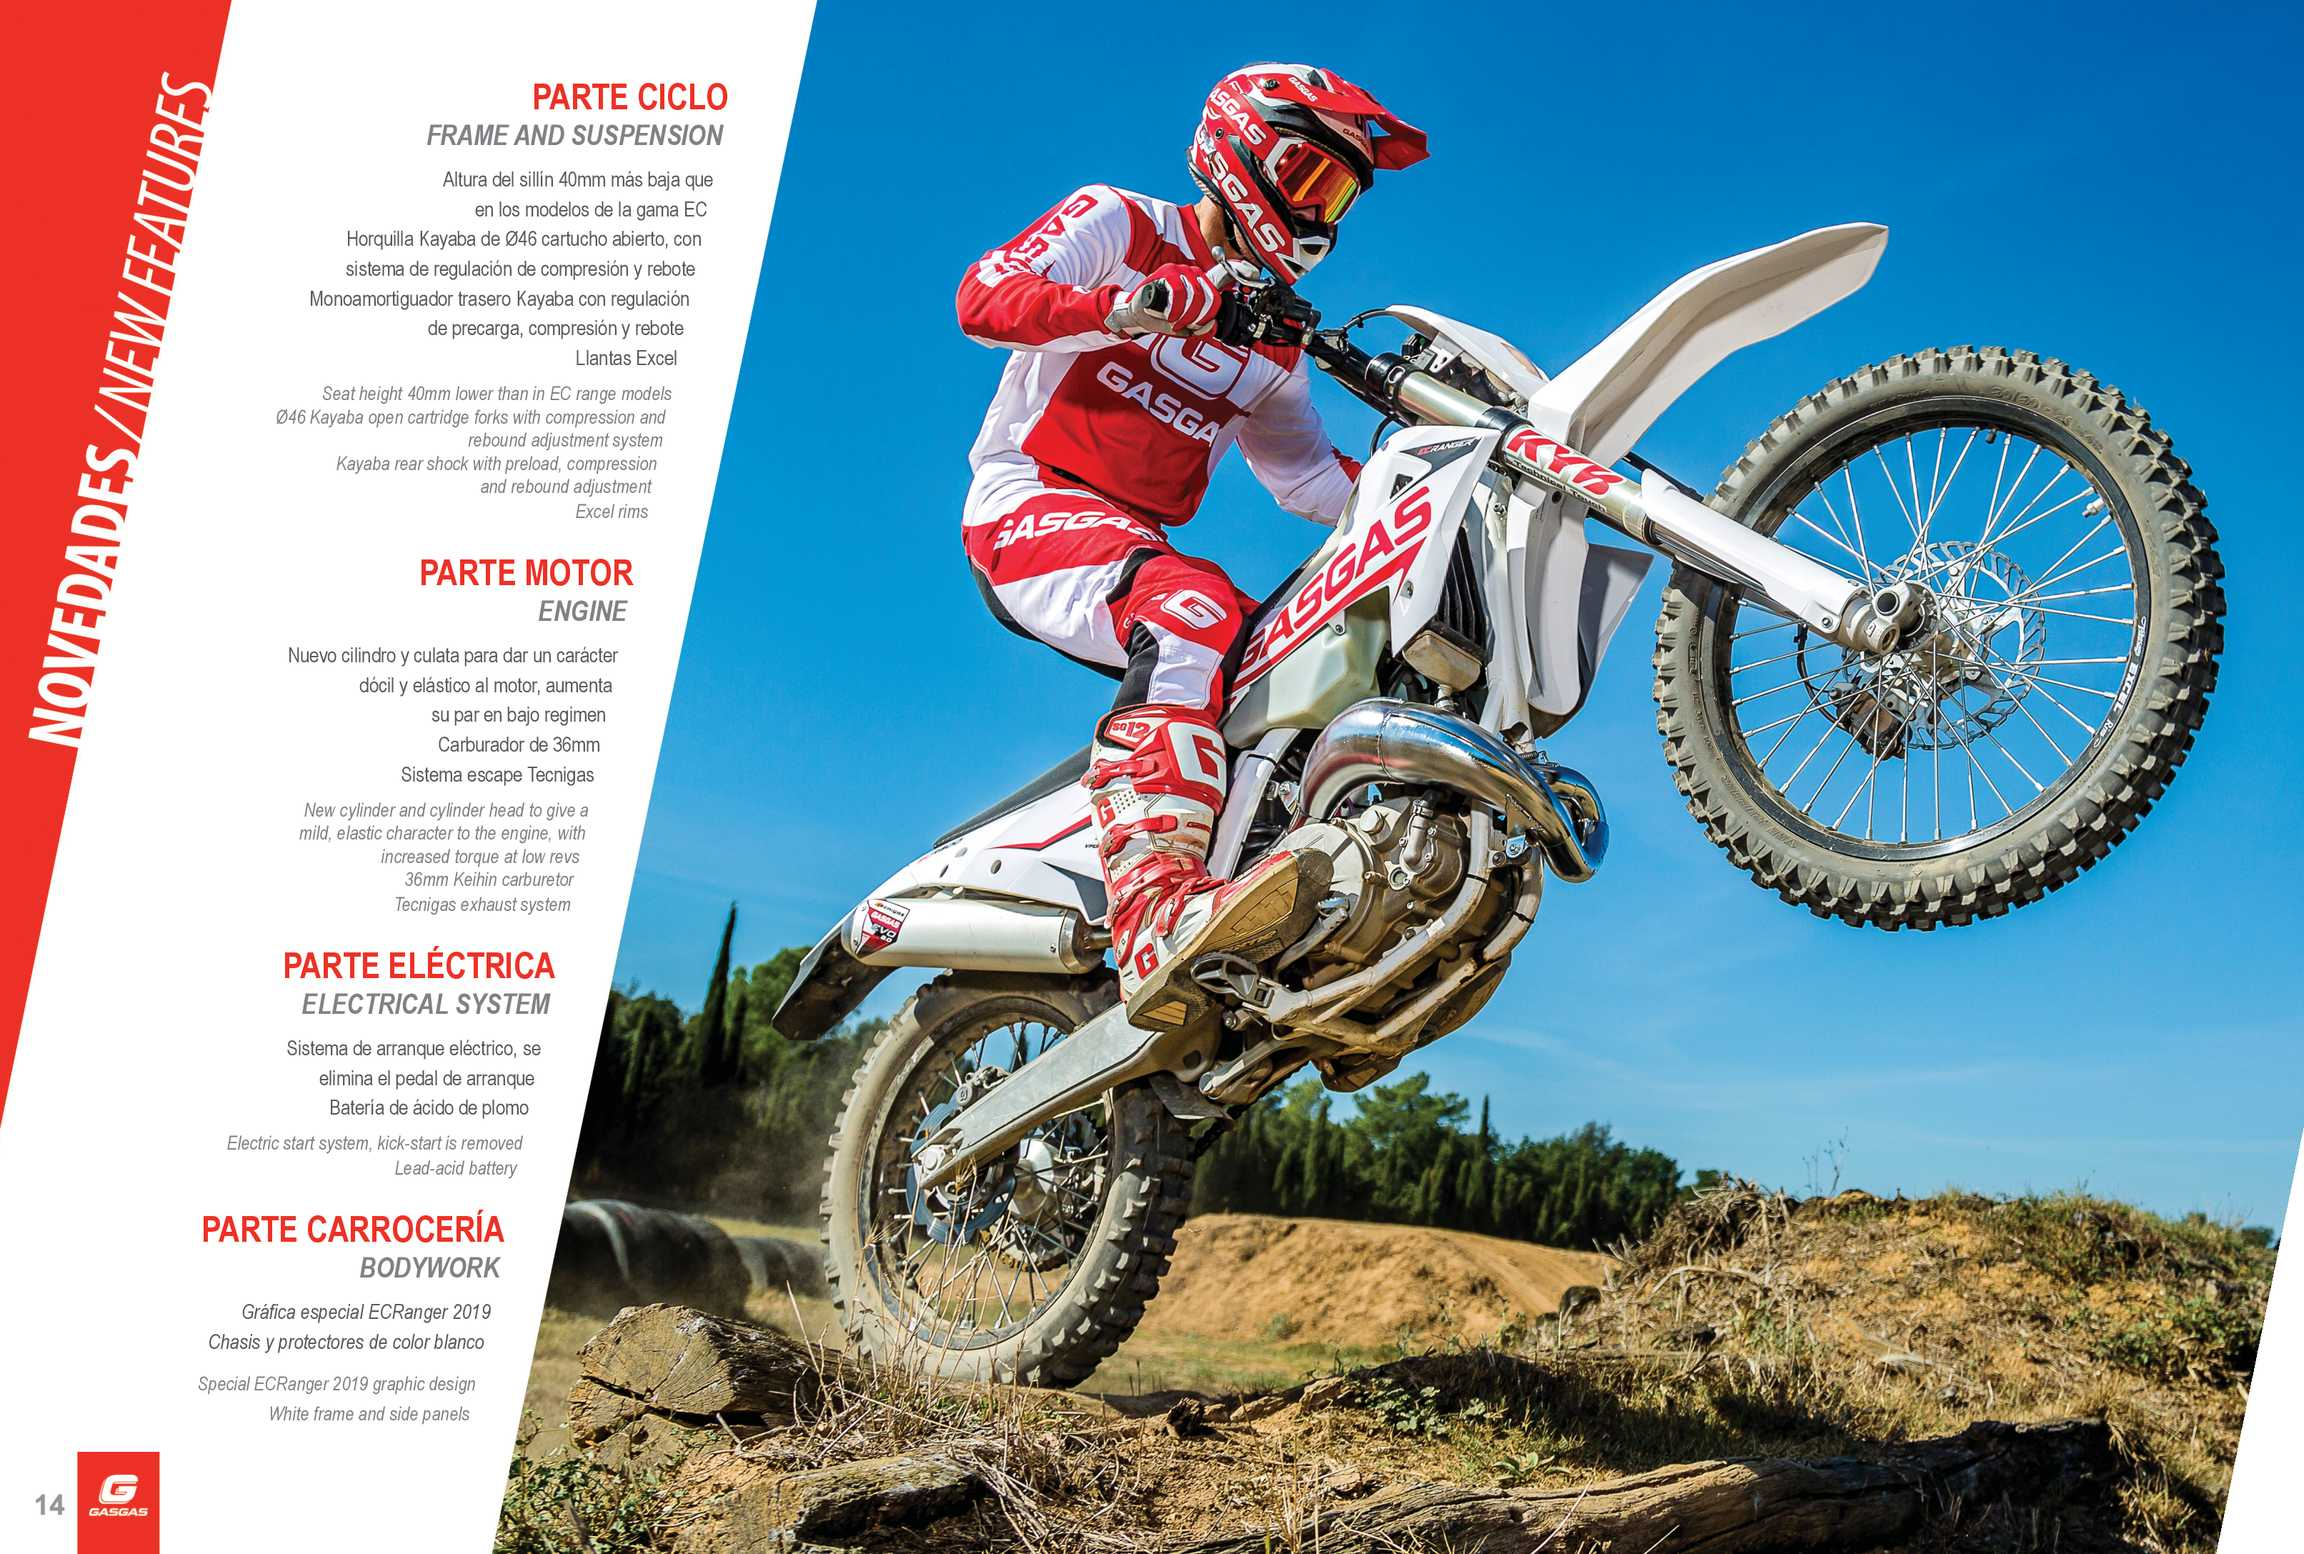 Dirt Bike Magazine - 2019 GASGAS - page 14